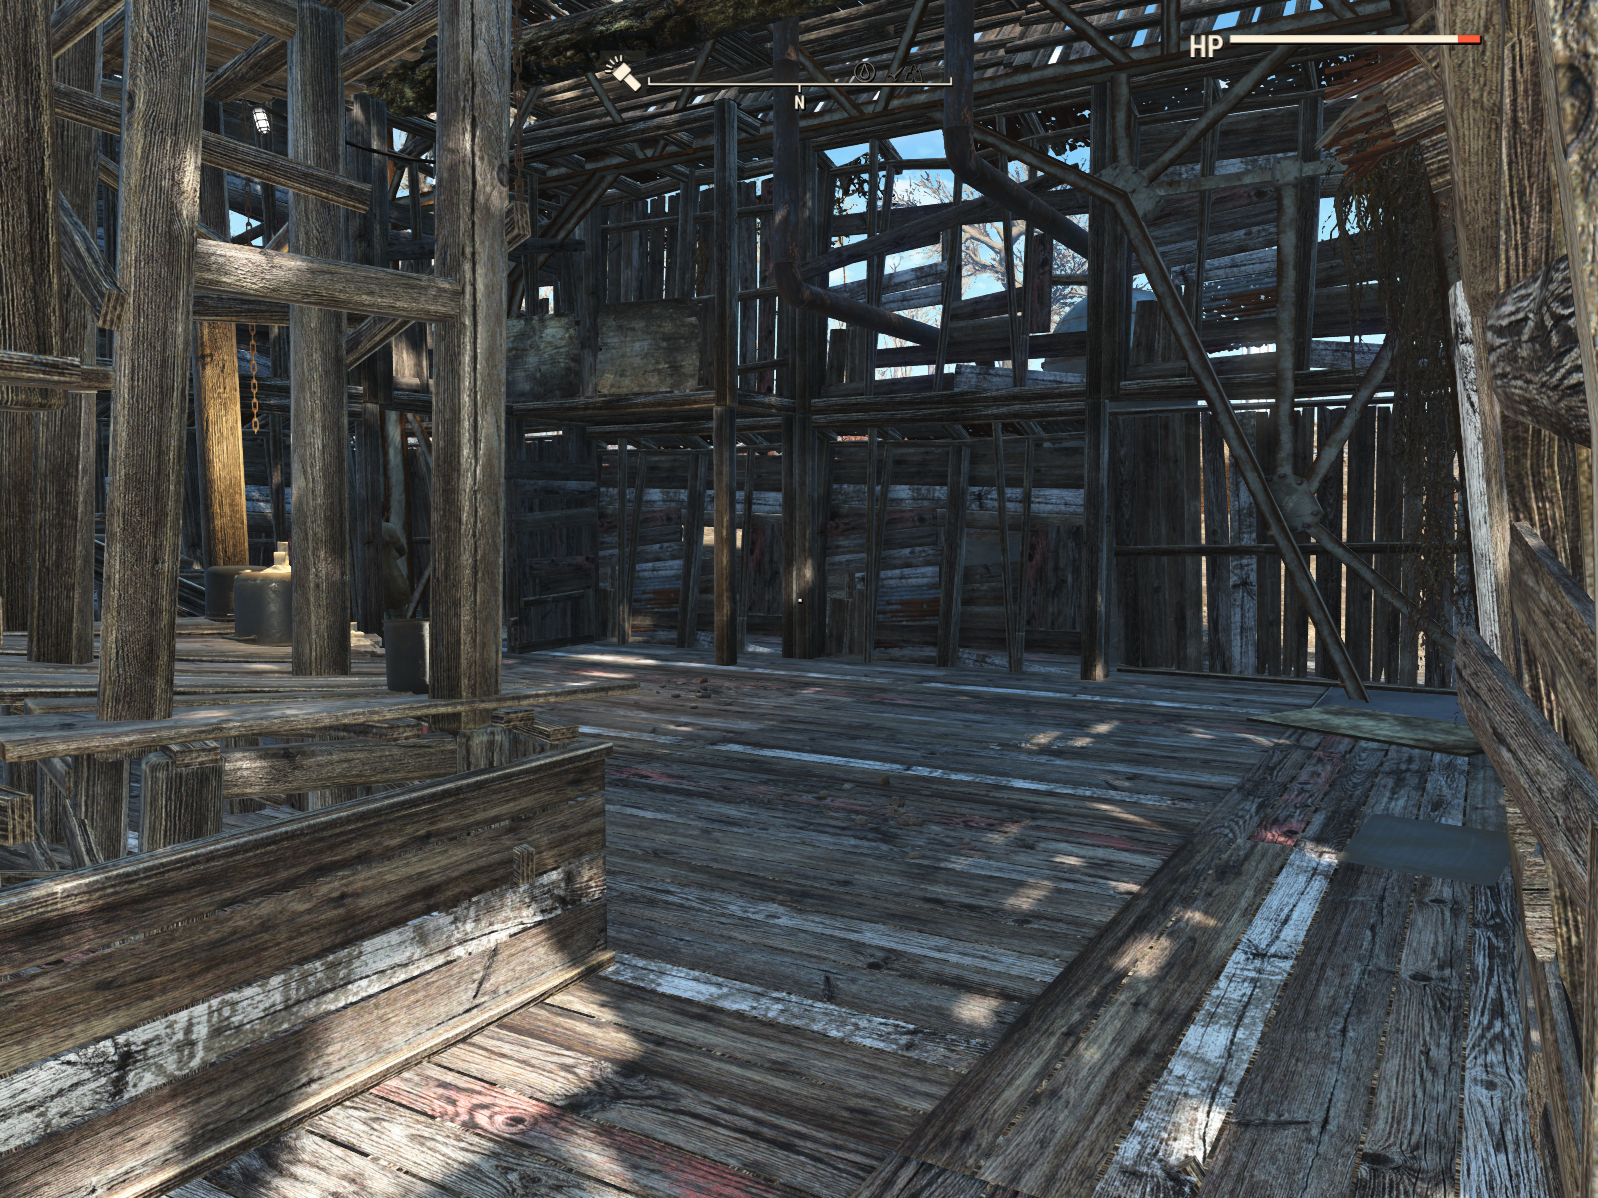 Guidelines For Wasteland Outpost Anf By Ggtrol At Fallout 4 Wiring Vault 88 Note V100 You Can Remove The Picture Frames Left In These Images I Added Them To Blueprint Version 100